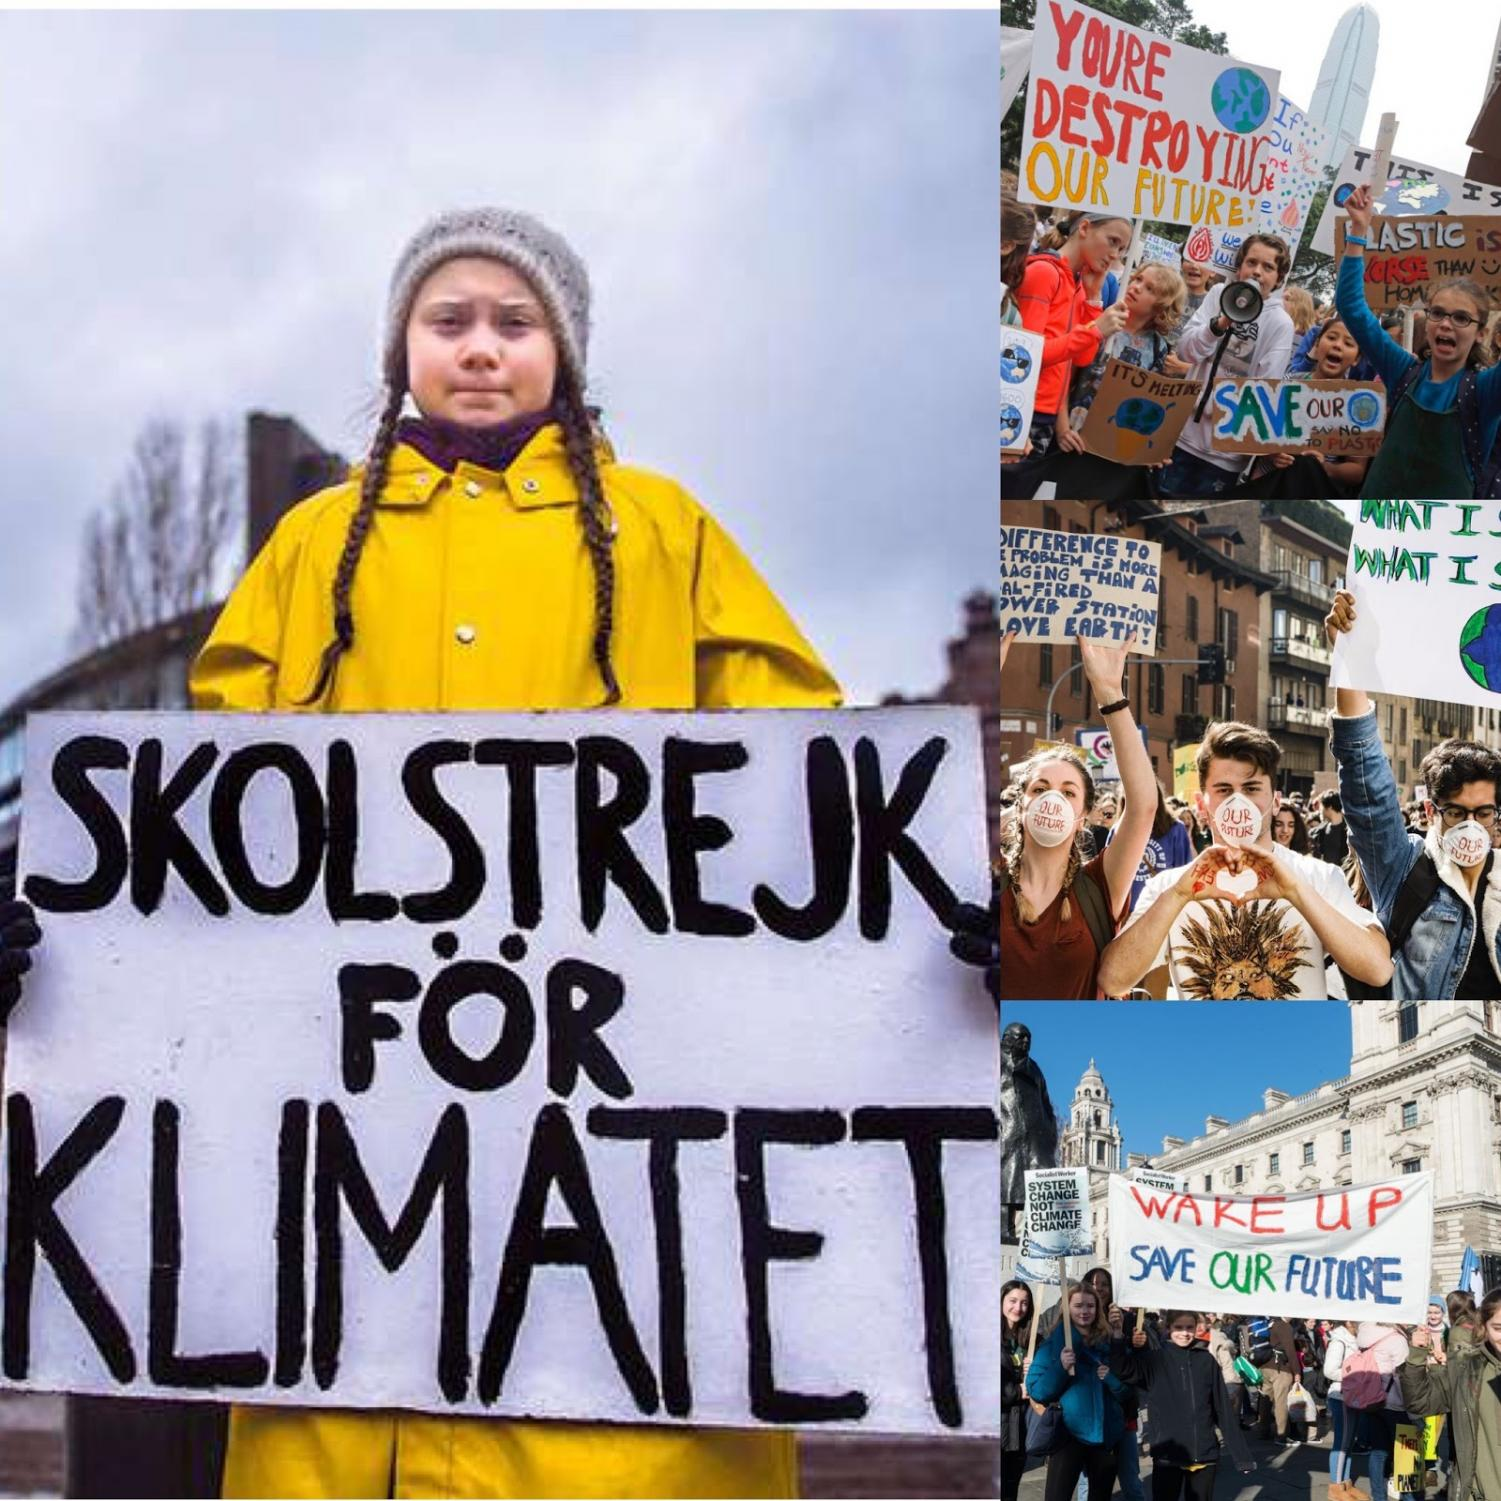 Greta Thunberg and other students around the world skipped school on Friday, March 15th to protest the government's failure to address climate change. Student protesters used signs, megaphones, face masks, and more to get their point across to government officials and the media that they want change and will no longer allow the earth and its atmosphere to be disregarded.